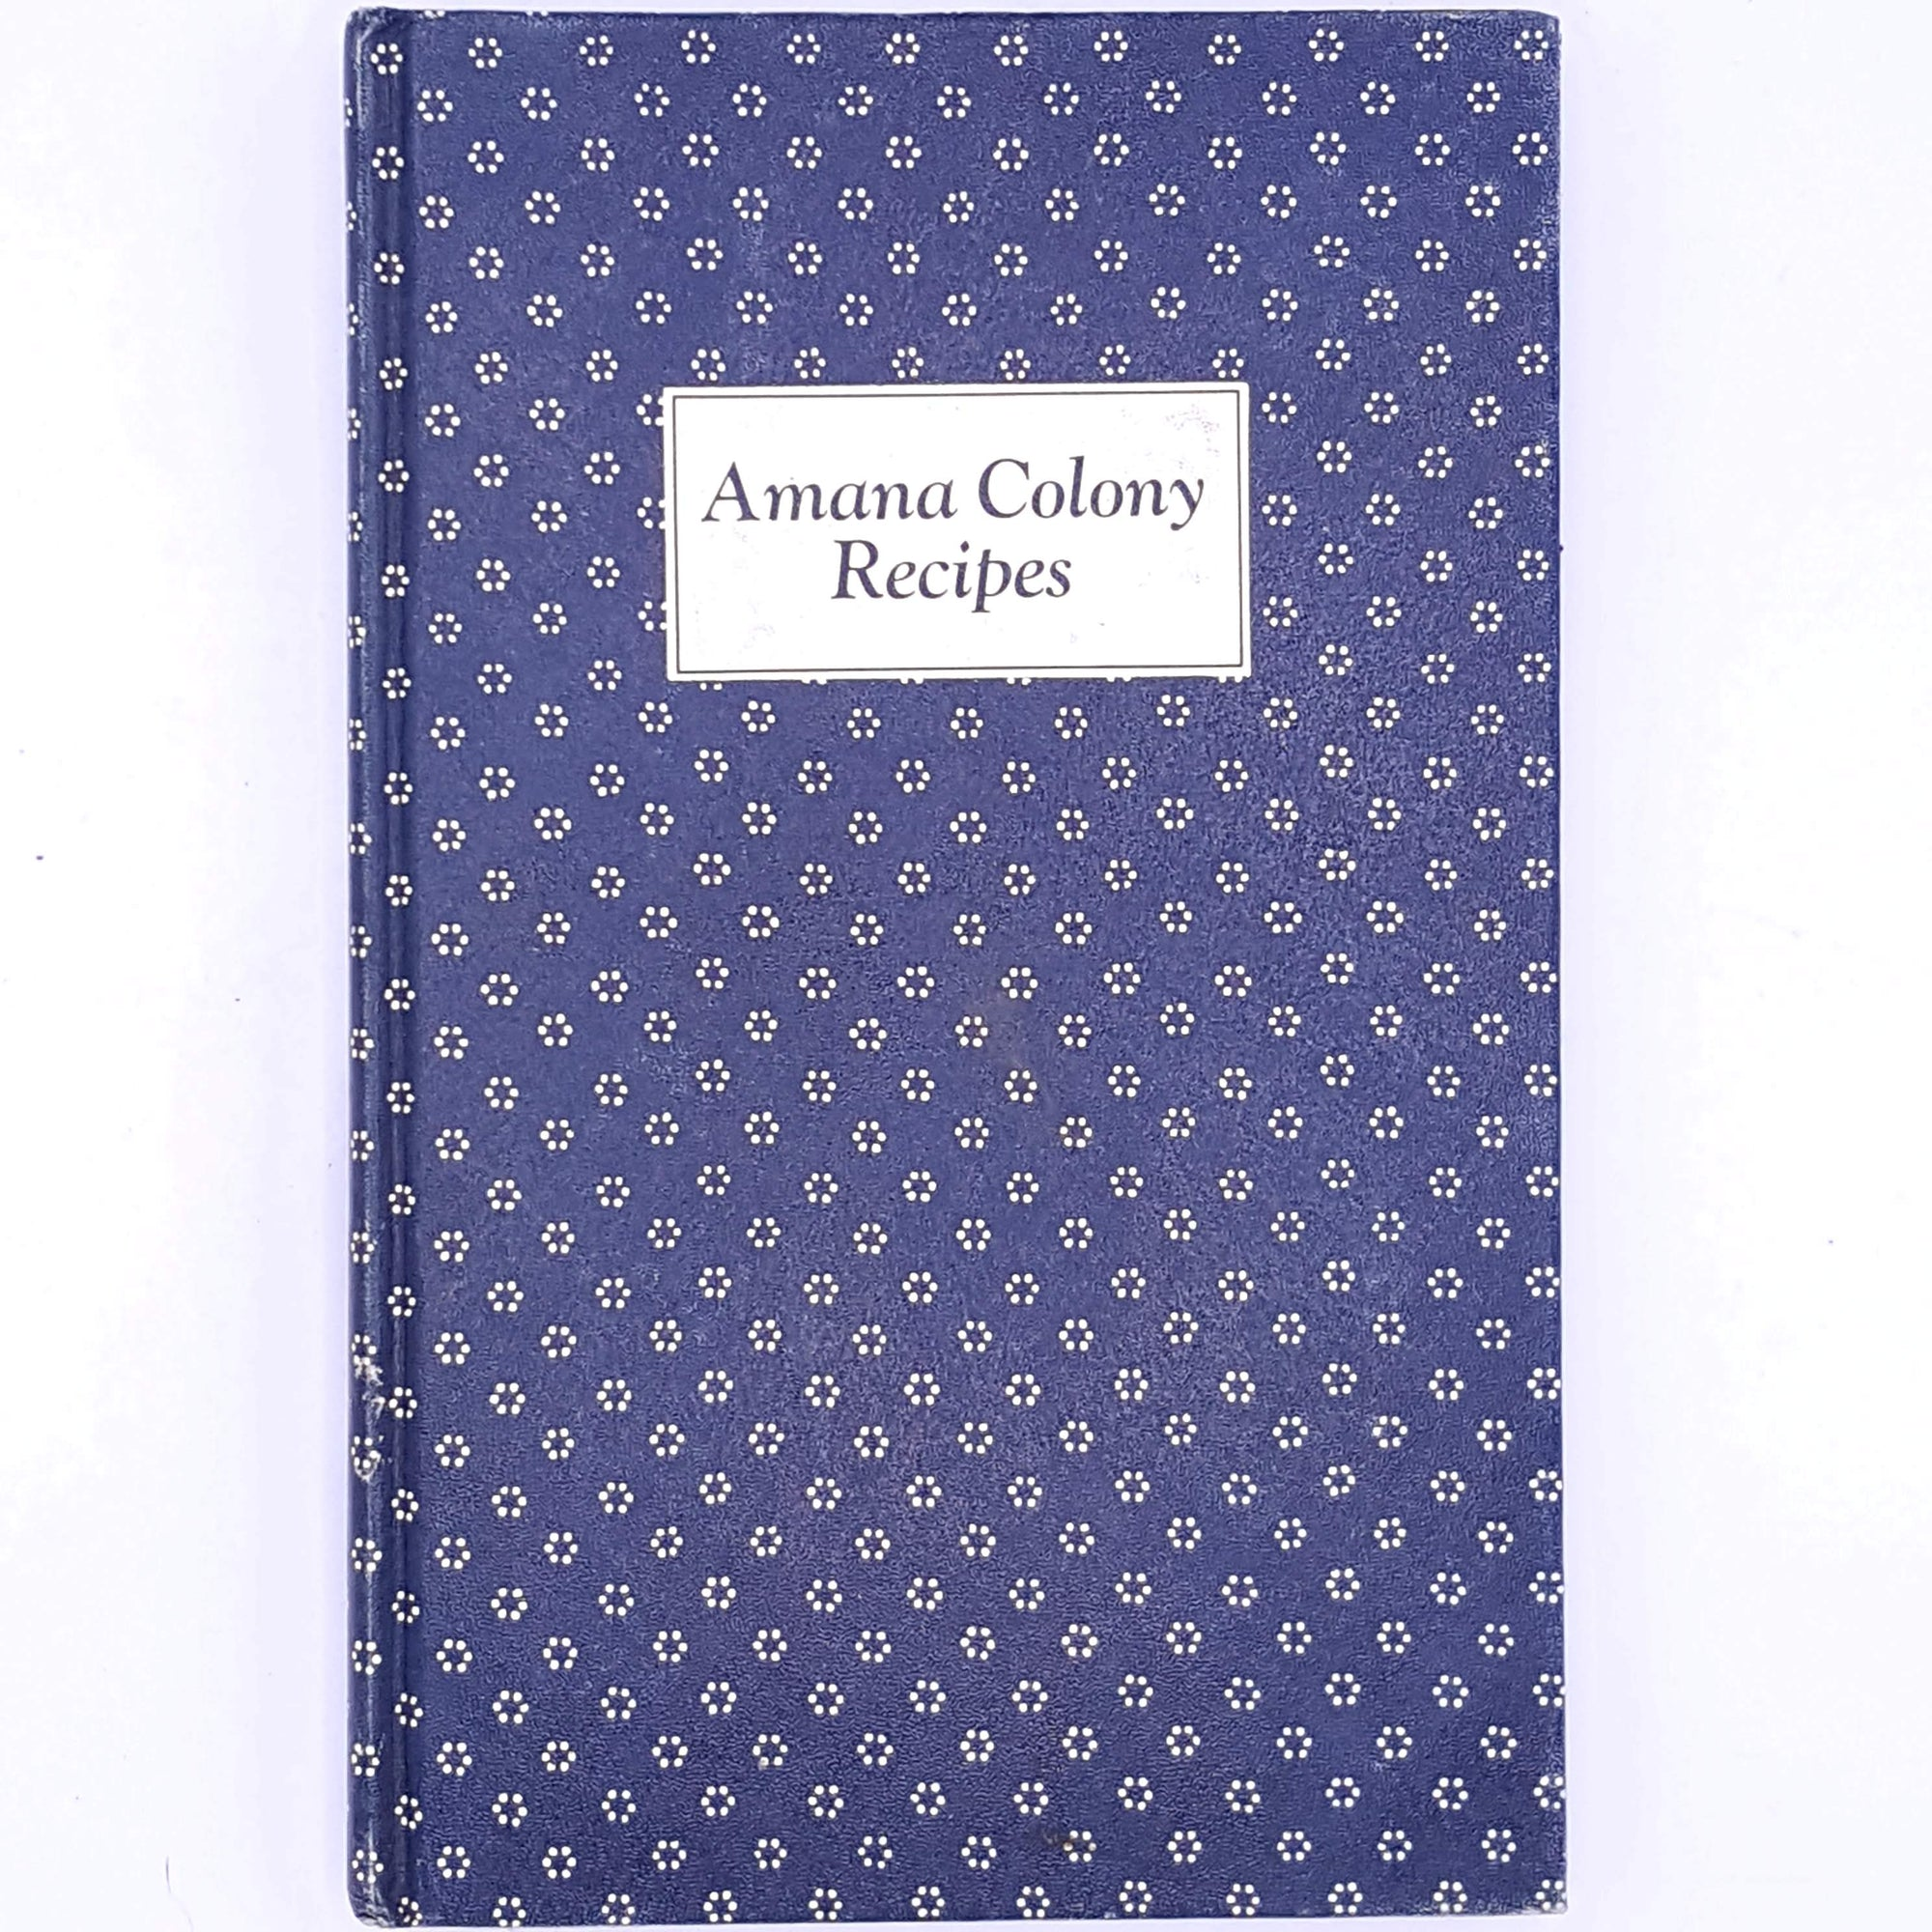 Amana Colony Recipes, The Ladies Aixiliary